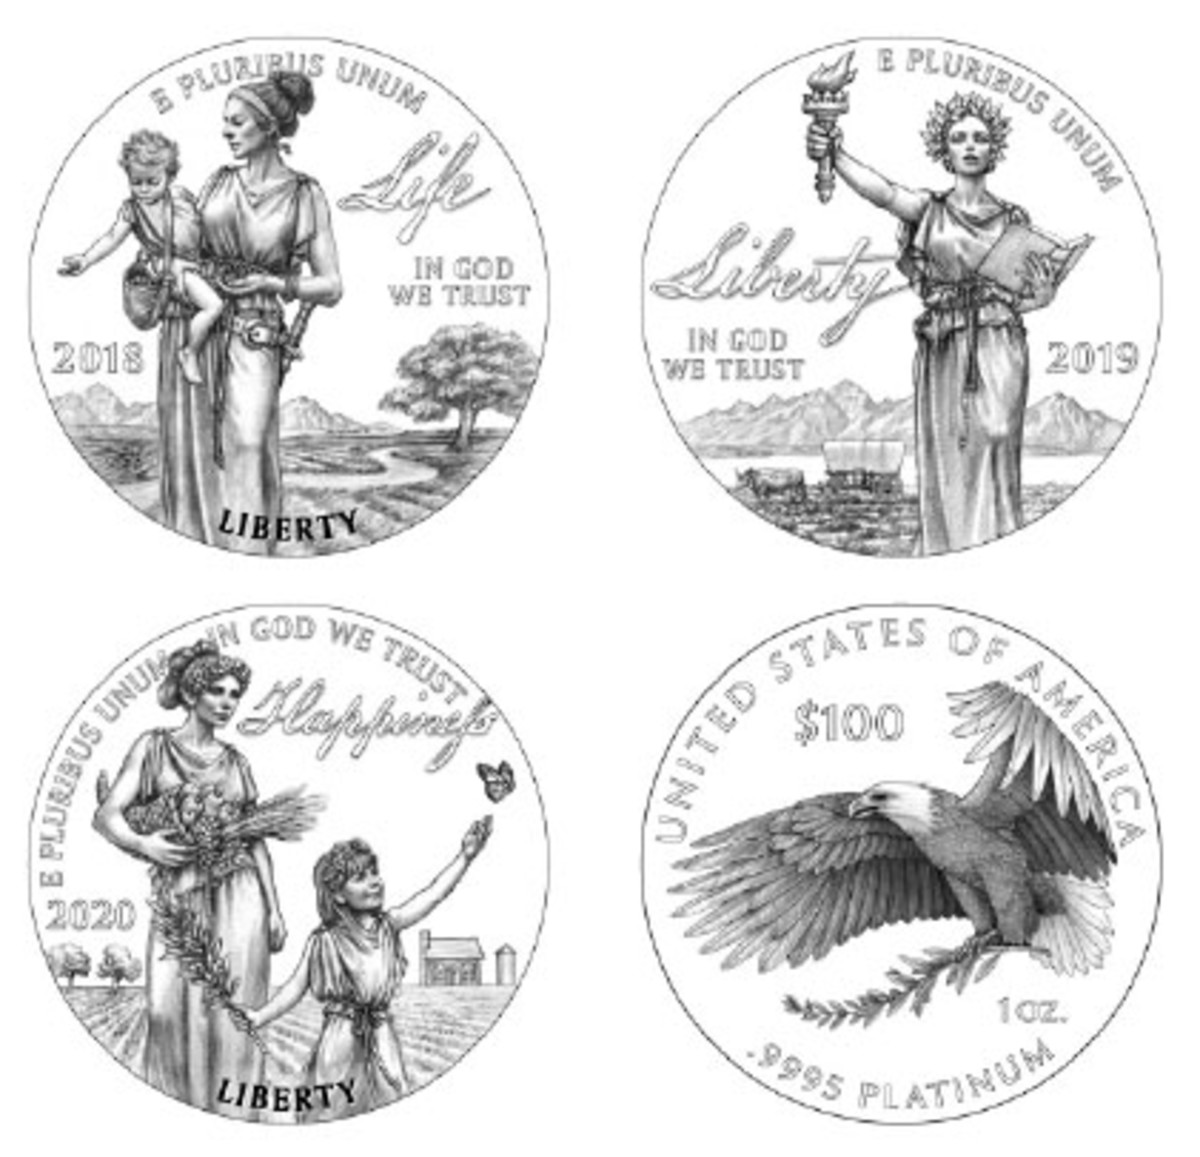 The next three platinum proofs will show the allegorical figure of Liberty demonstrating Life, Liberty and Happiness.